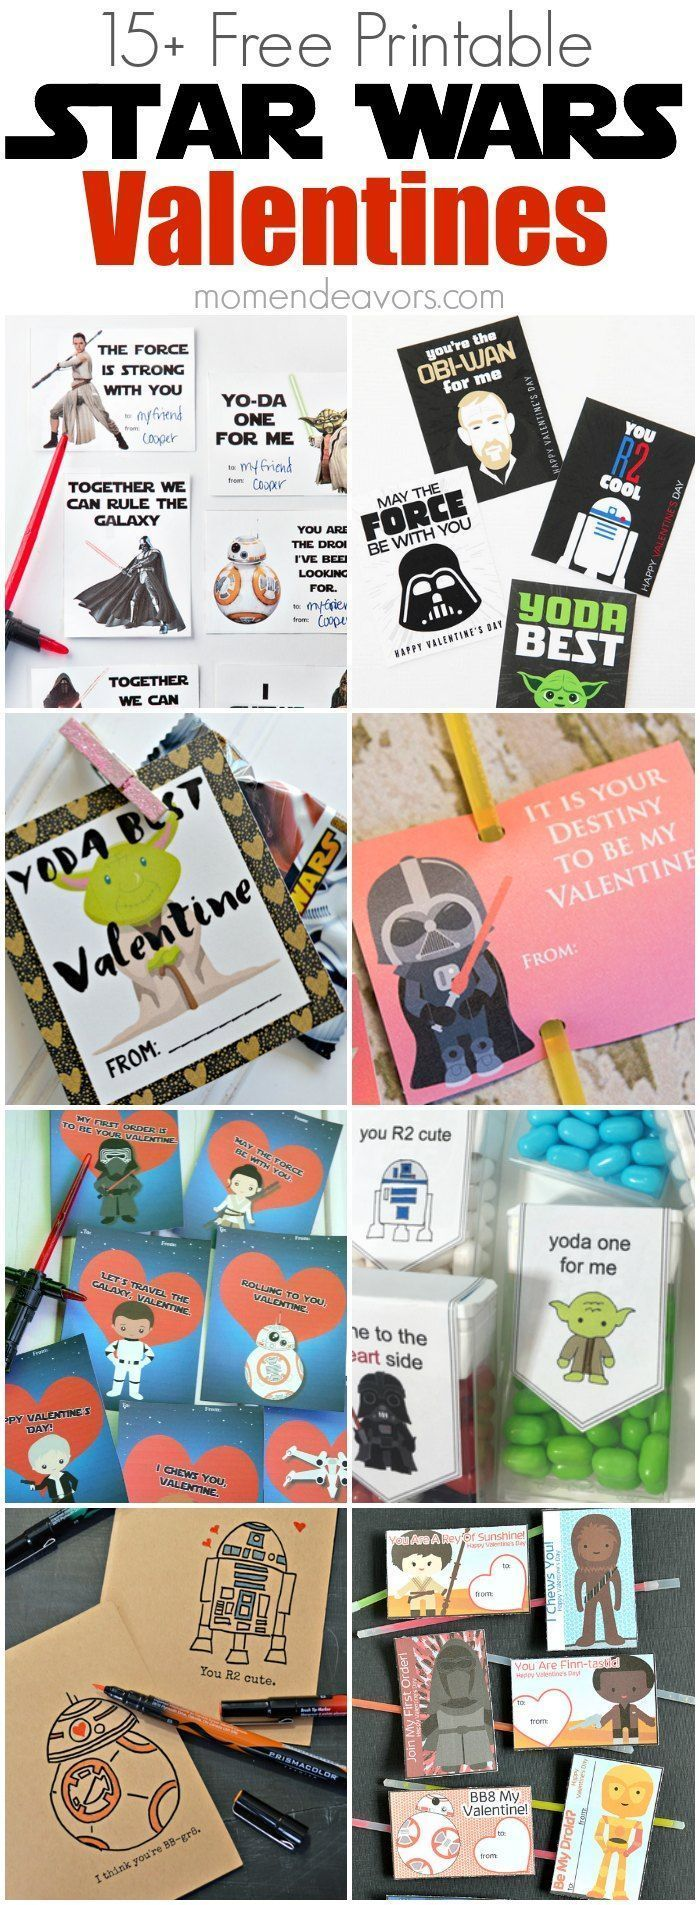 Printable Star Wars Valentines - so many fun Star Wars cards for Valentine's Day!